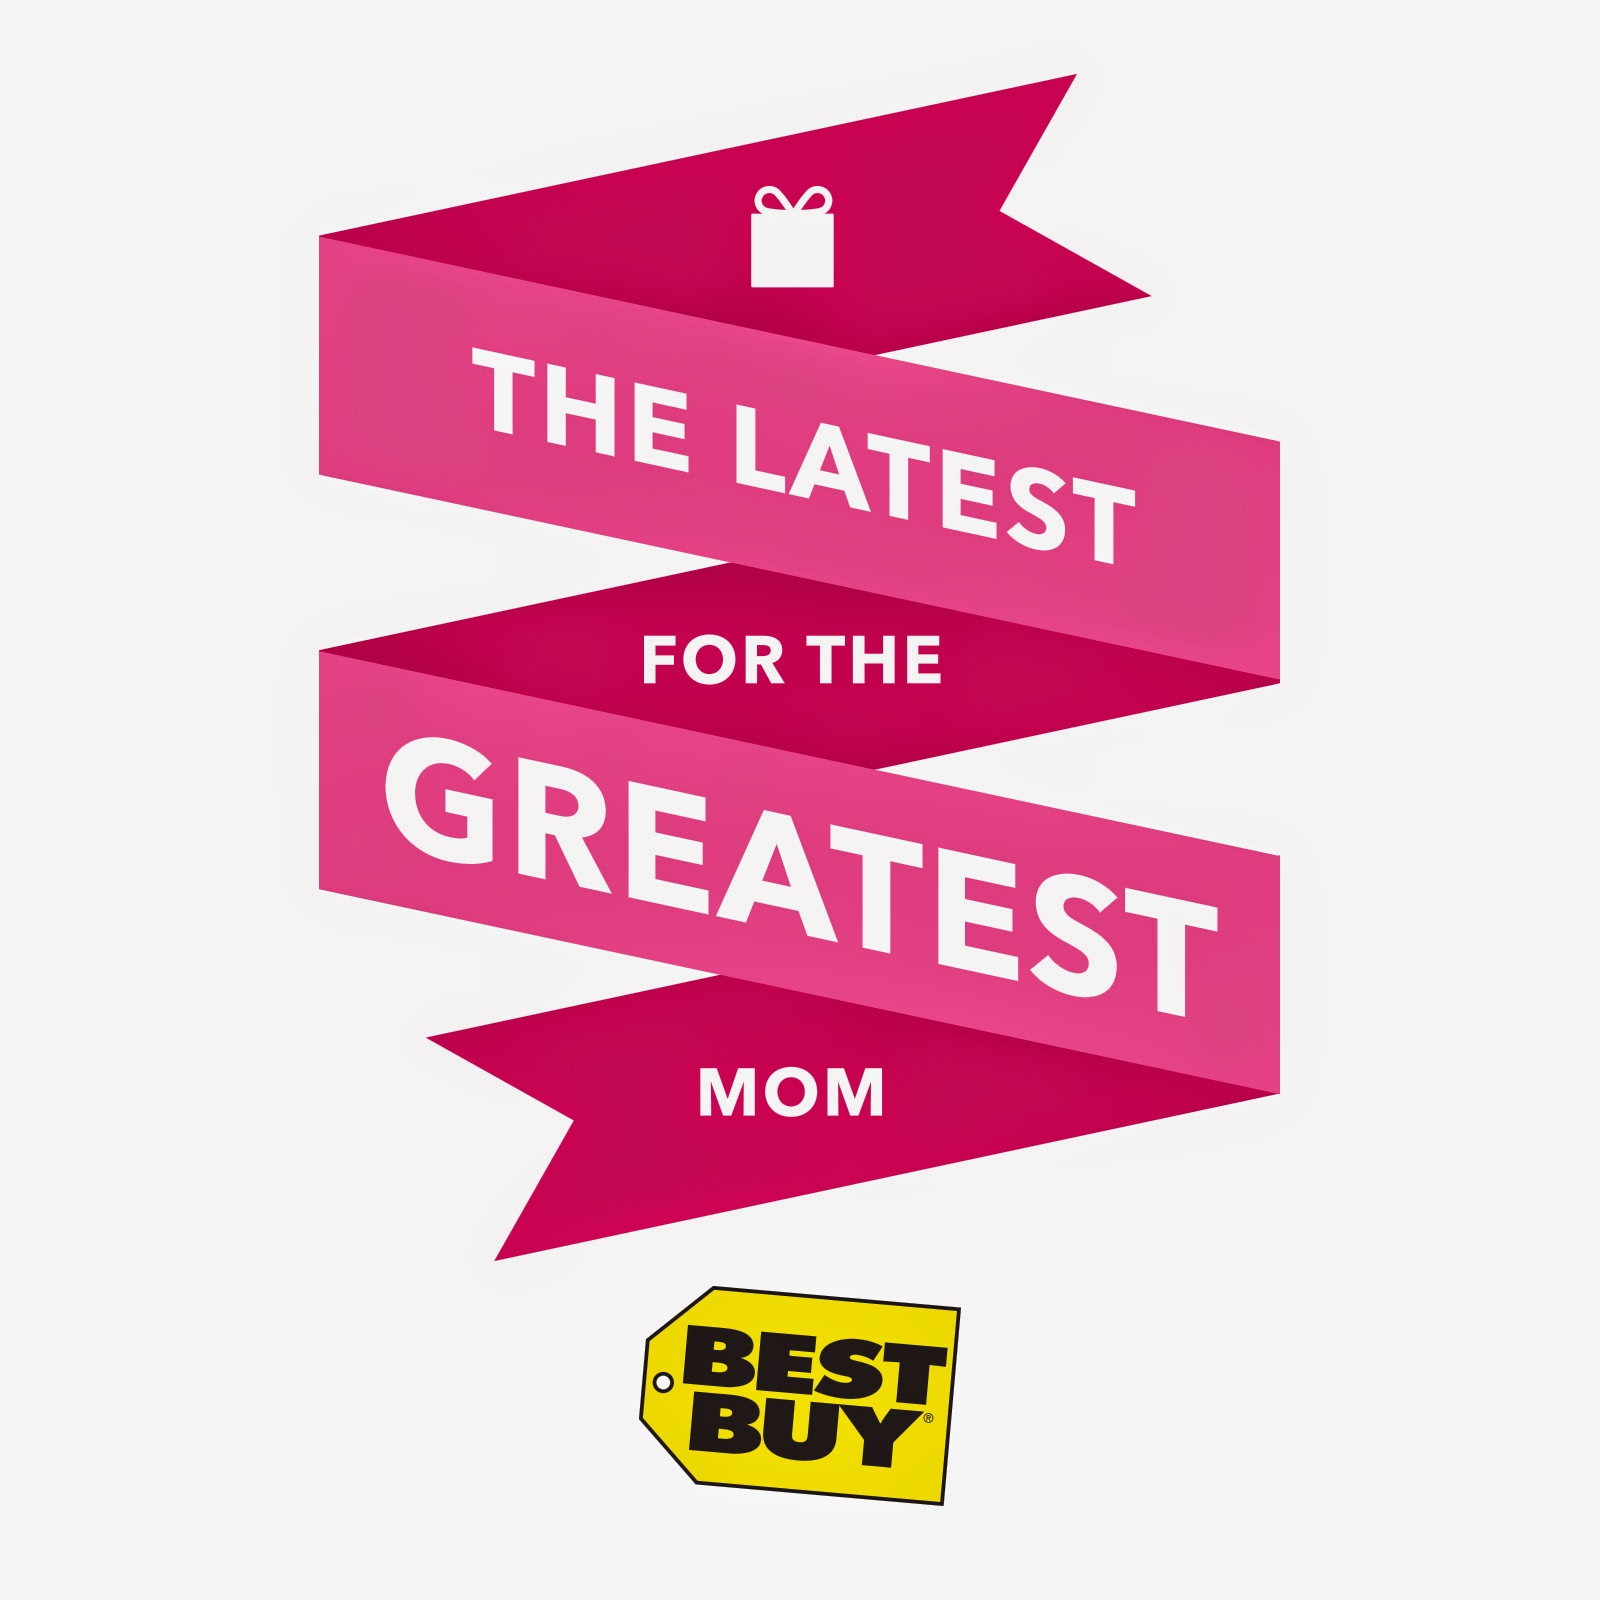 The Latest and Greatest for Mom at Best Buy